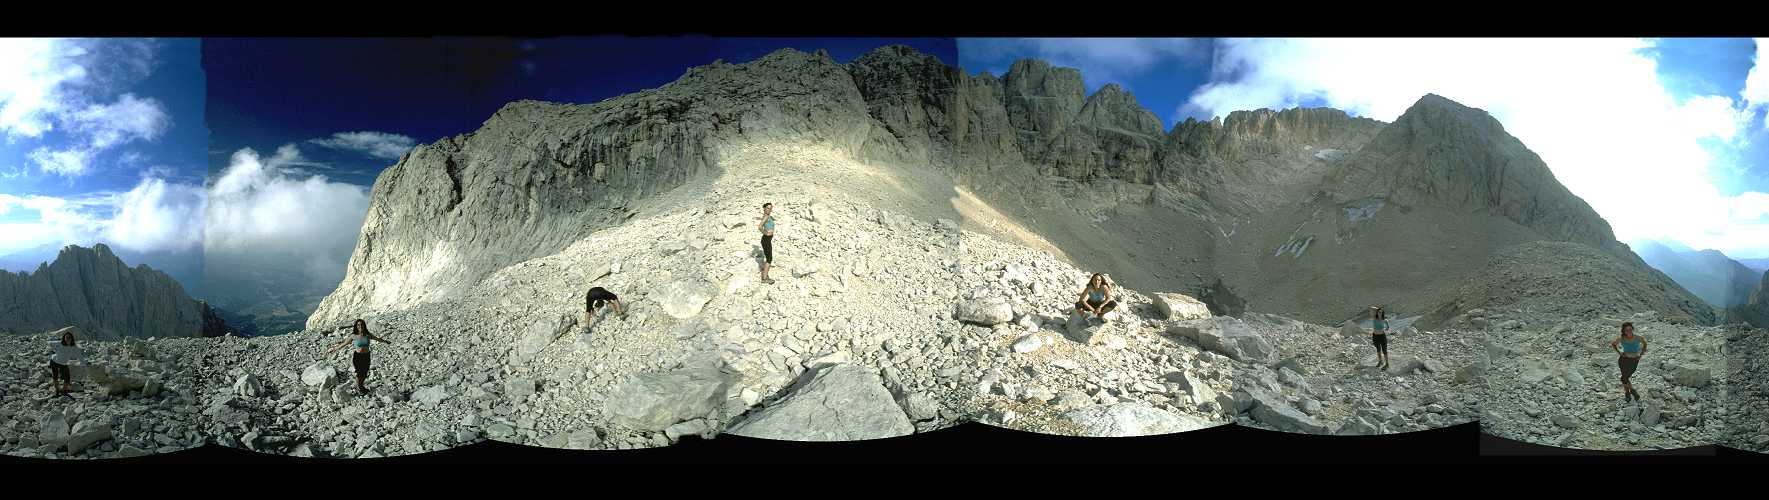 Panorama from the Calderone glacier, Gran Sasso, central Italy, 1998